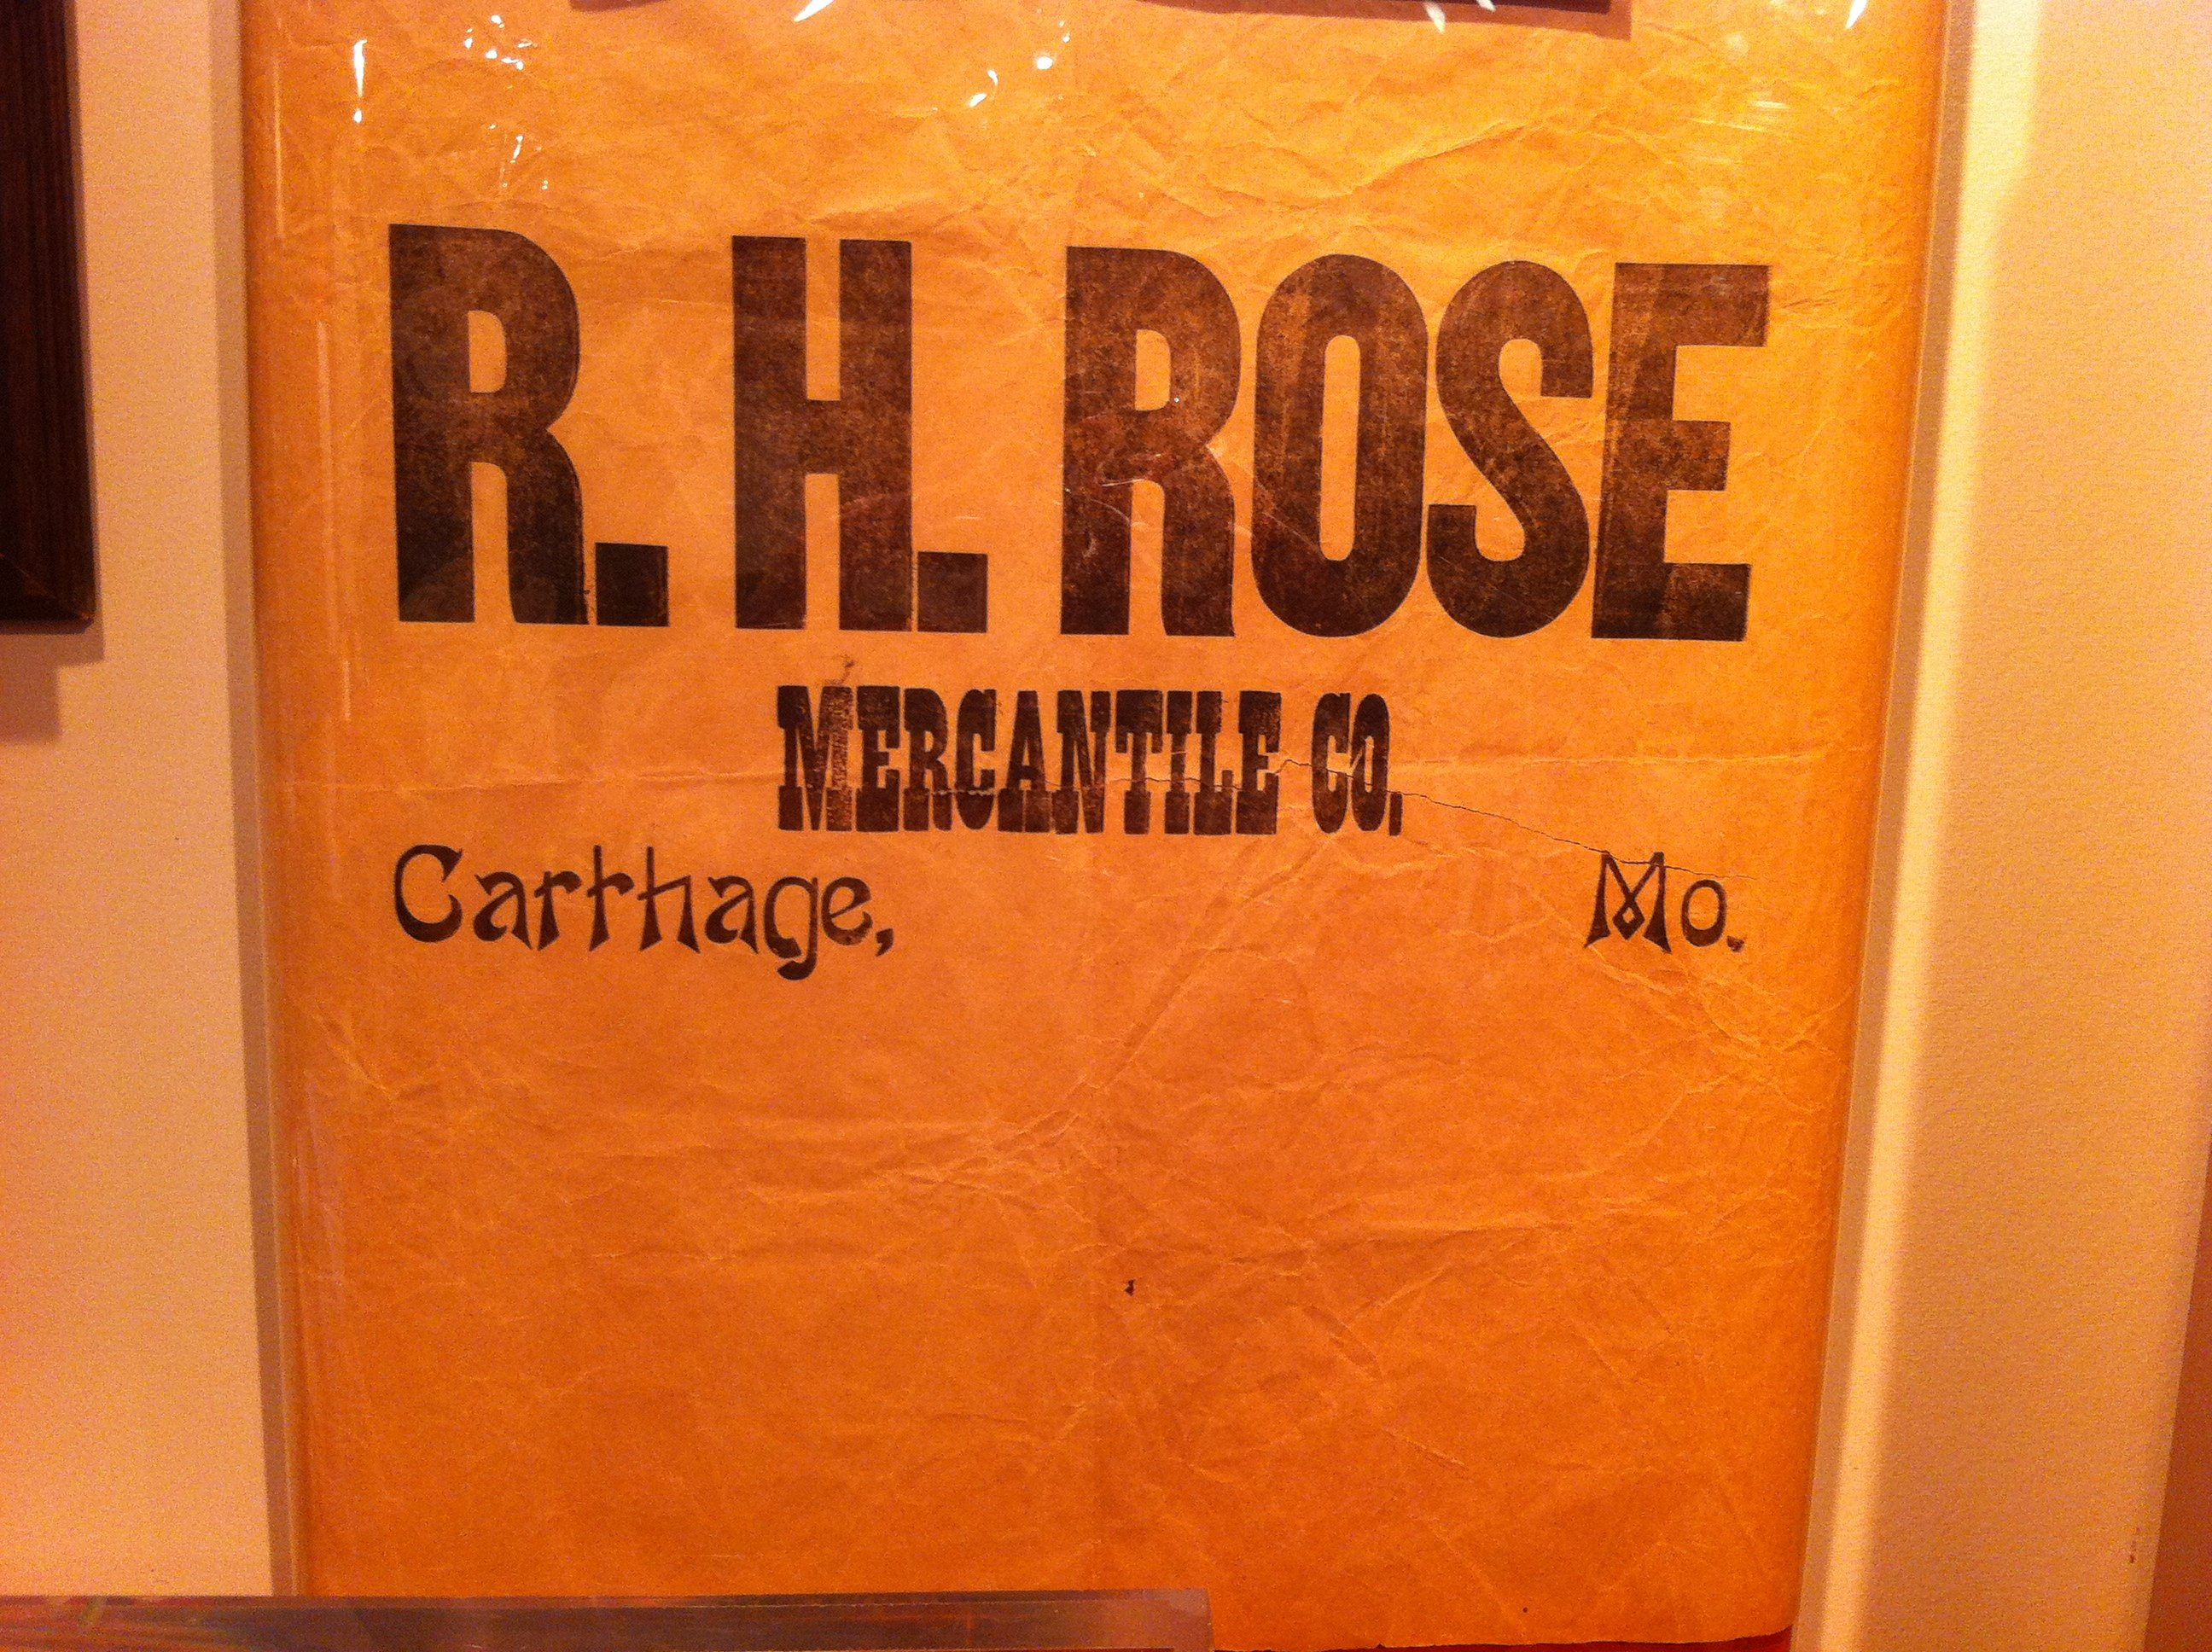 R. H. Rose Mercantile Company packing tissue from the turn-of-the-twentieth-century as displayed in 175th Anniversary of Carthage Exhibit in 2017.